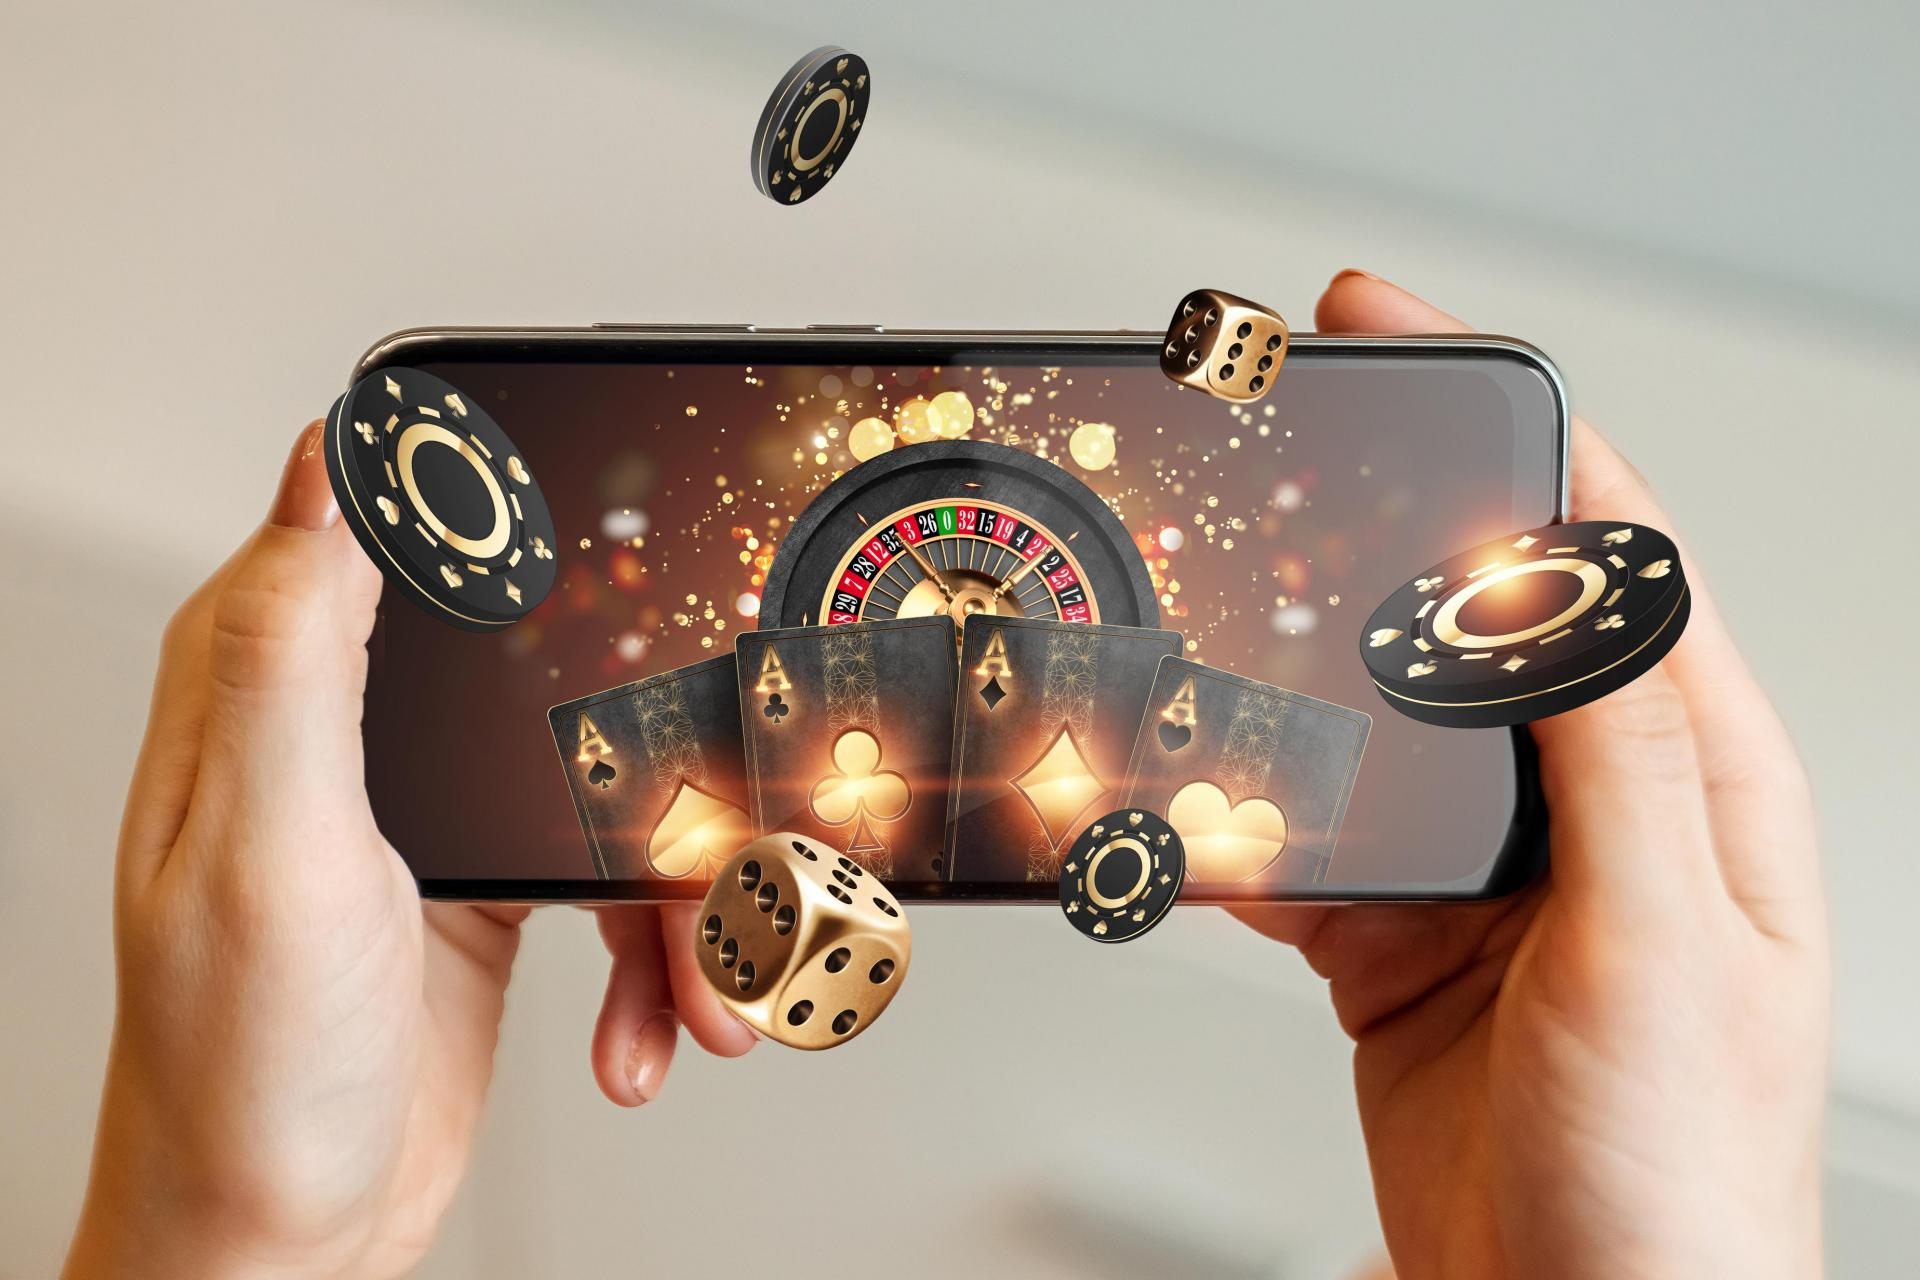 Why online casino apps are so popular in 2021